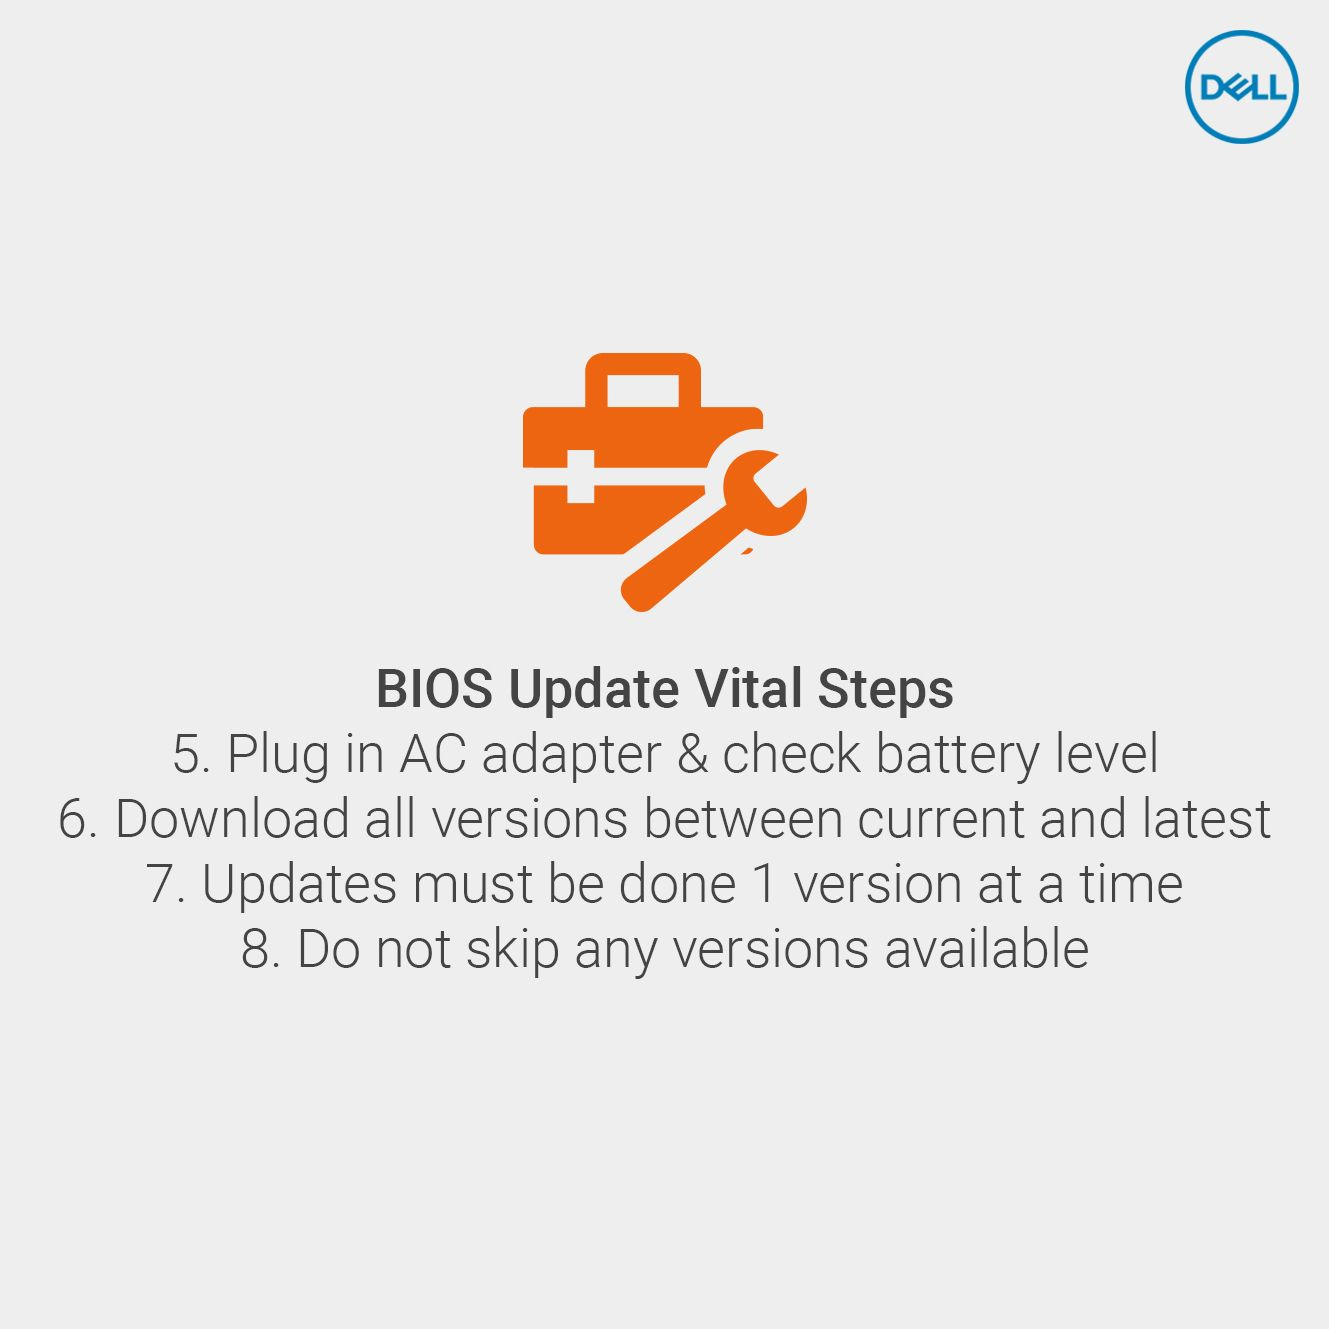 Updating your #BIOS is one of the most important steps when